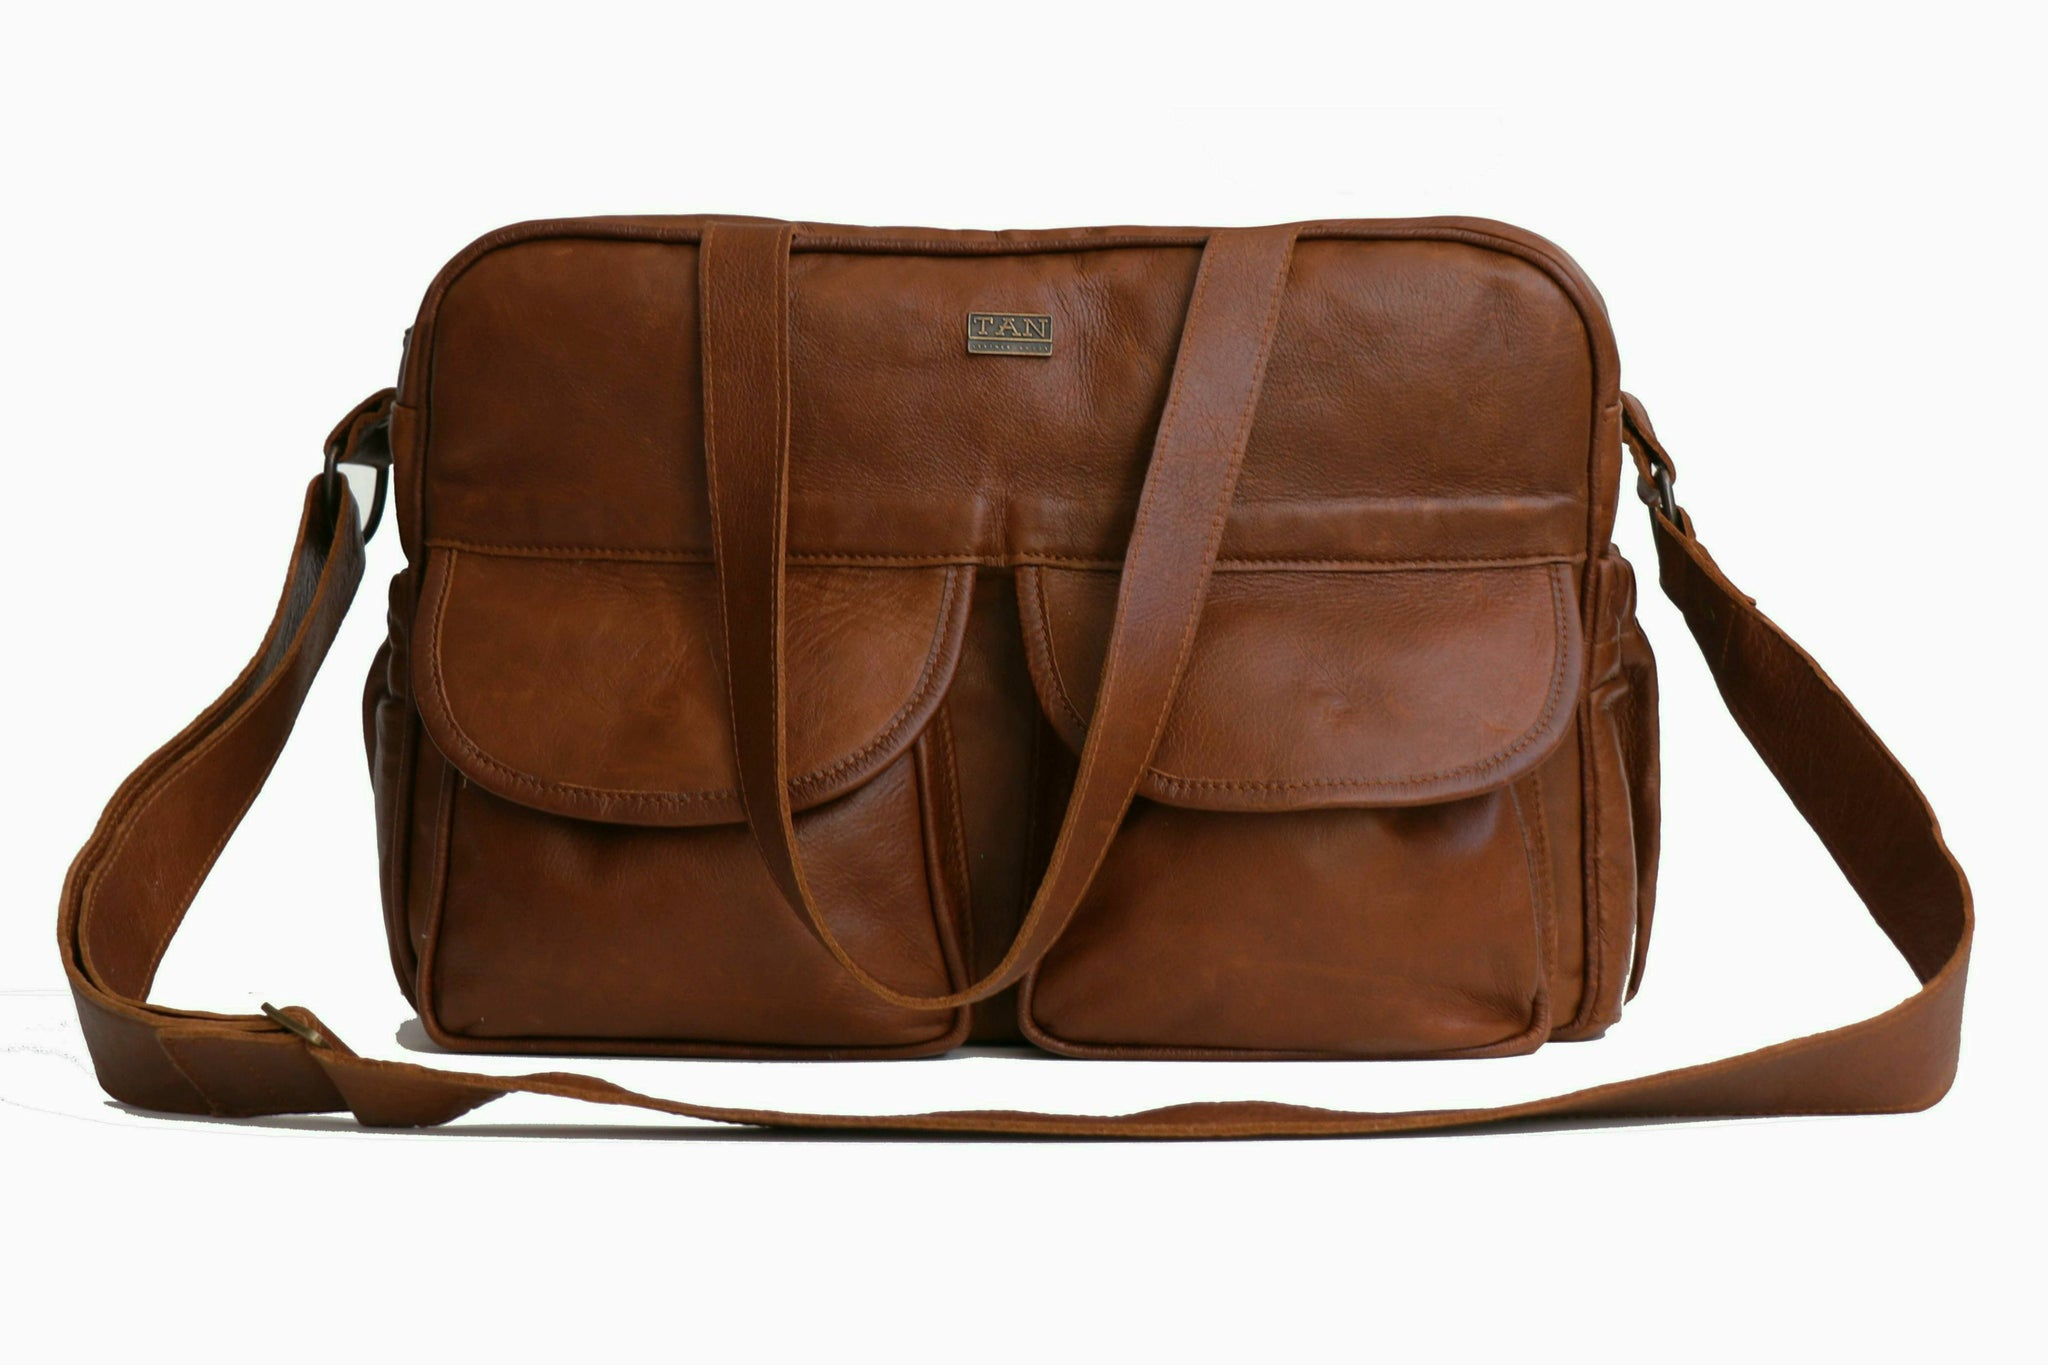 TAN Joanie Leather Nappy Bag